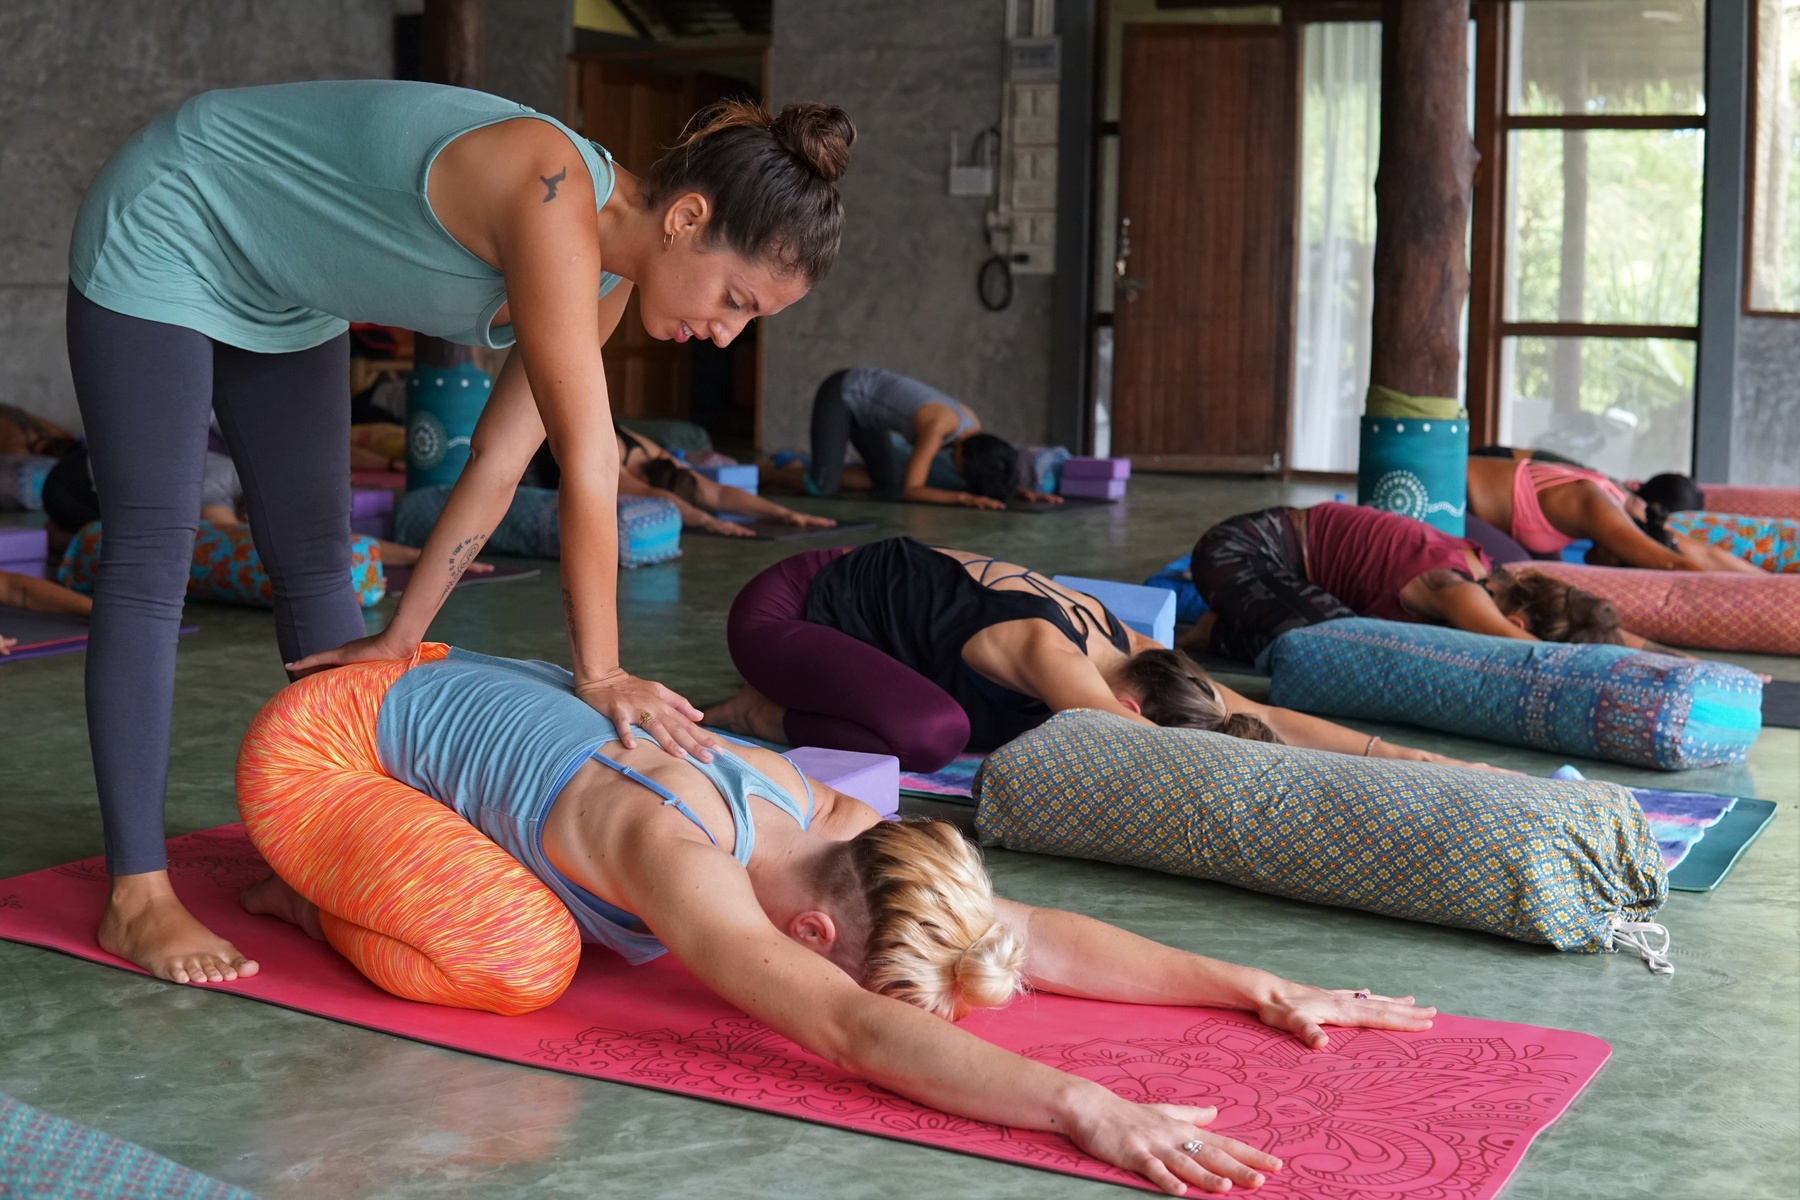 200-hrs alignment & intro to therapeutic yoga ttc at luna alignment koh phangan, thailand000121515623721.jpg